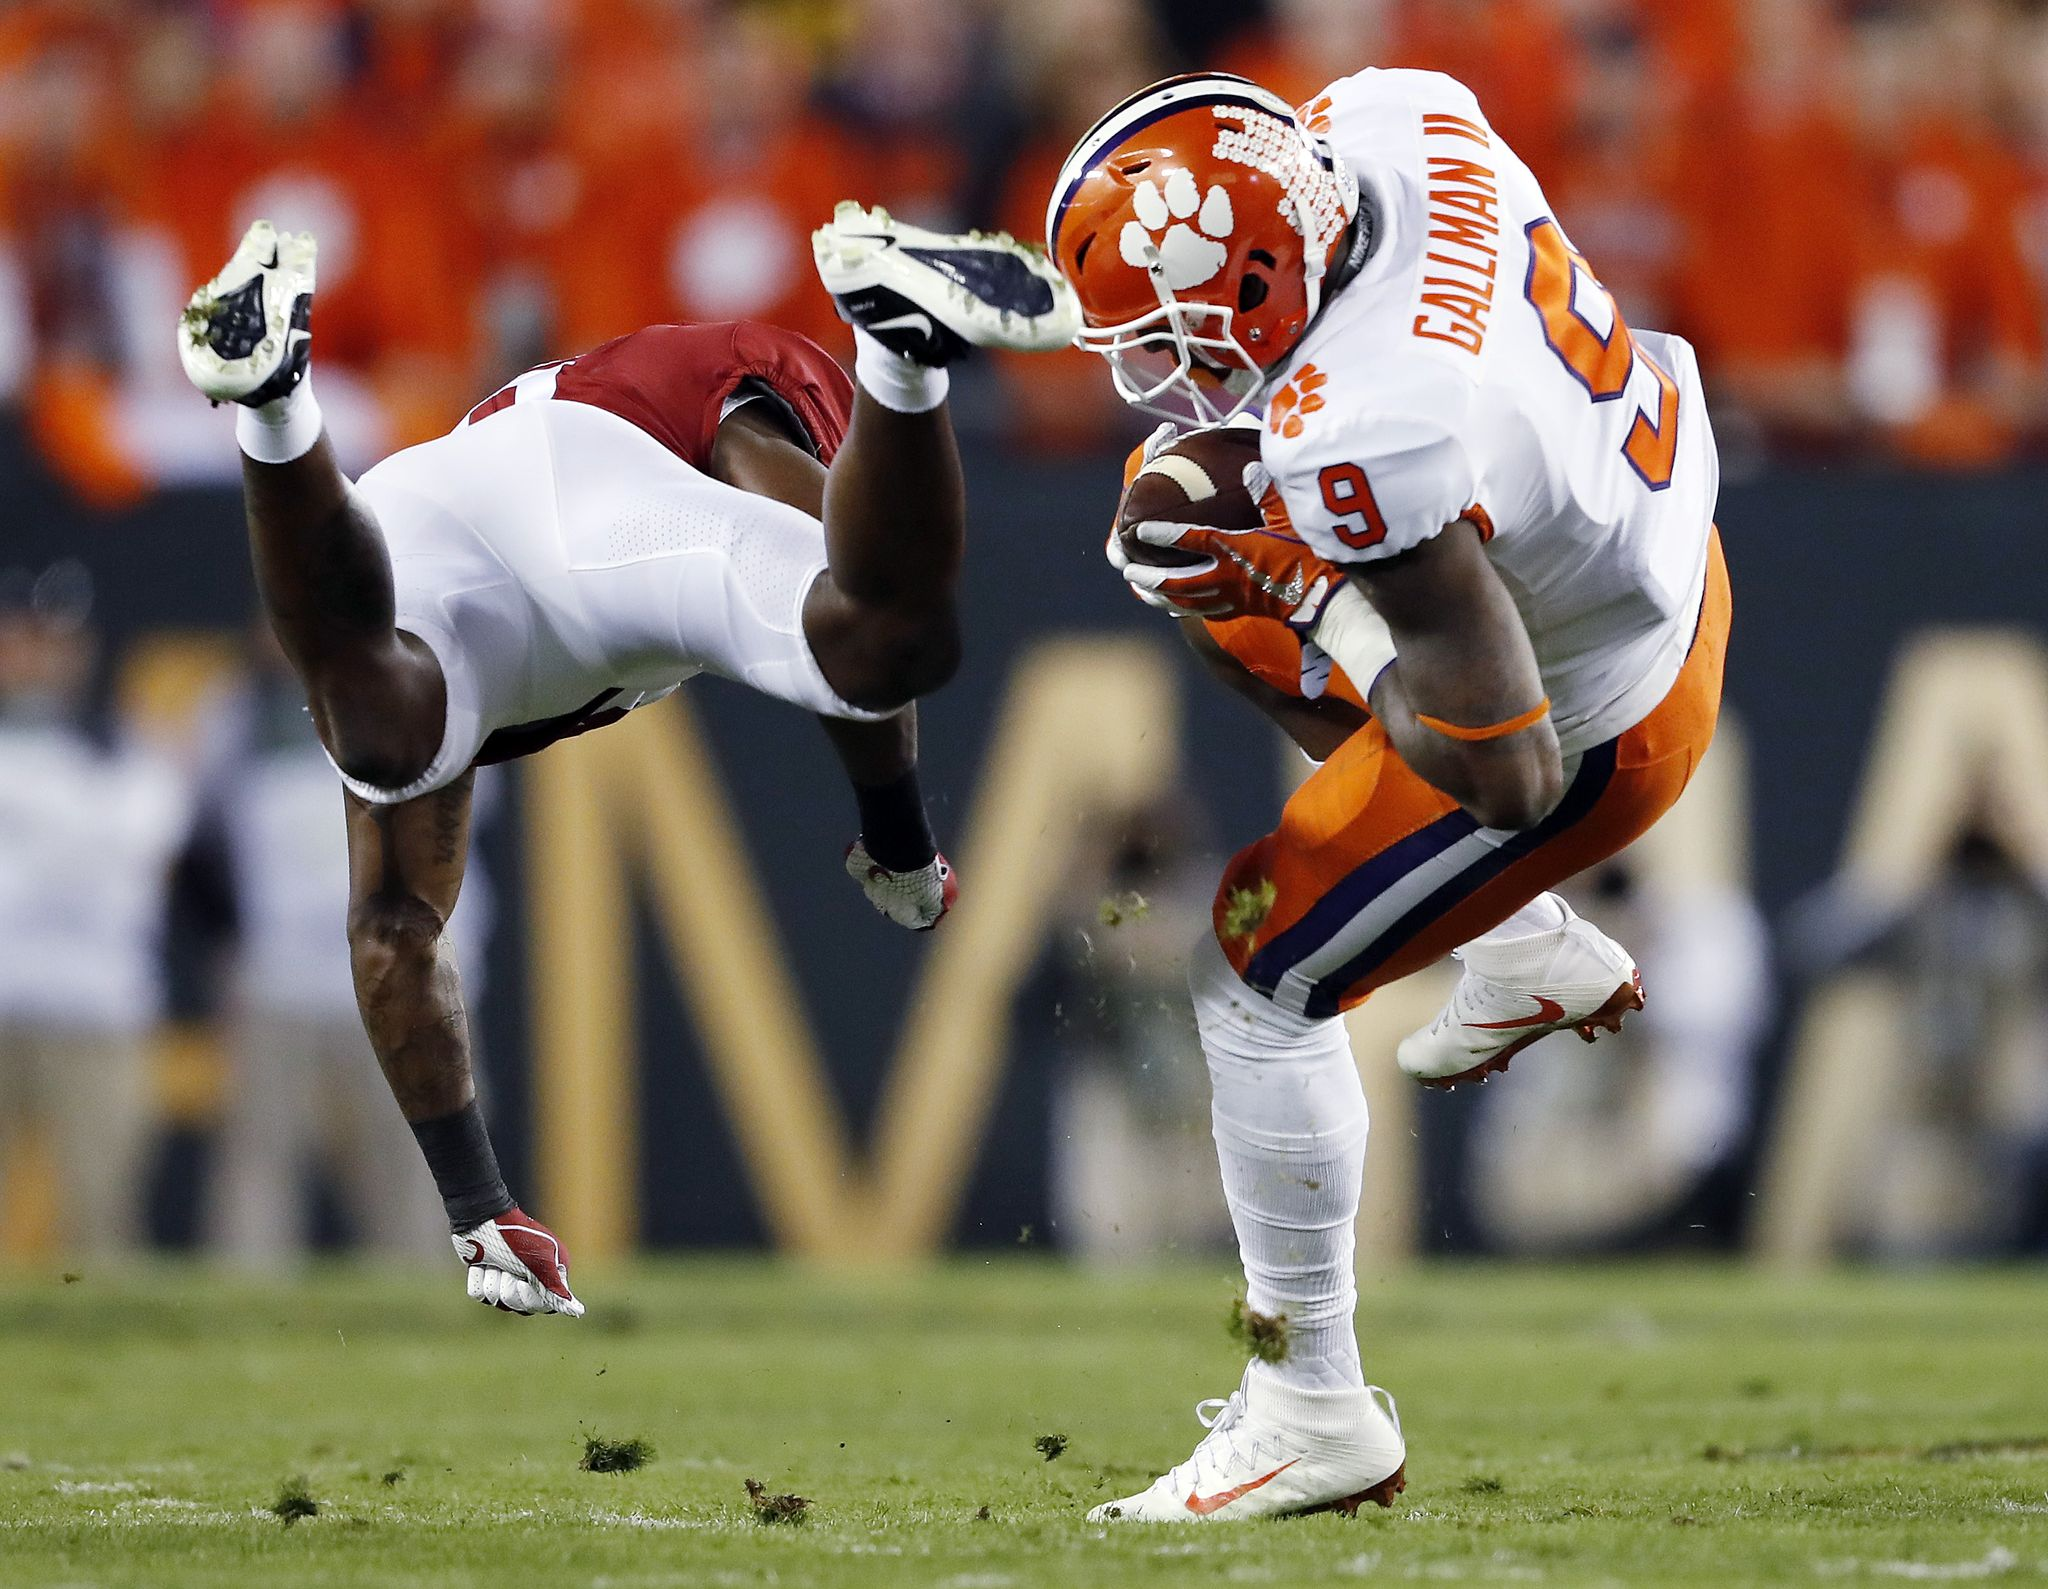 LOVERRO: The college game, like the NFL, has a concussion problem